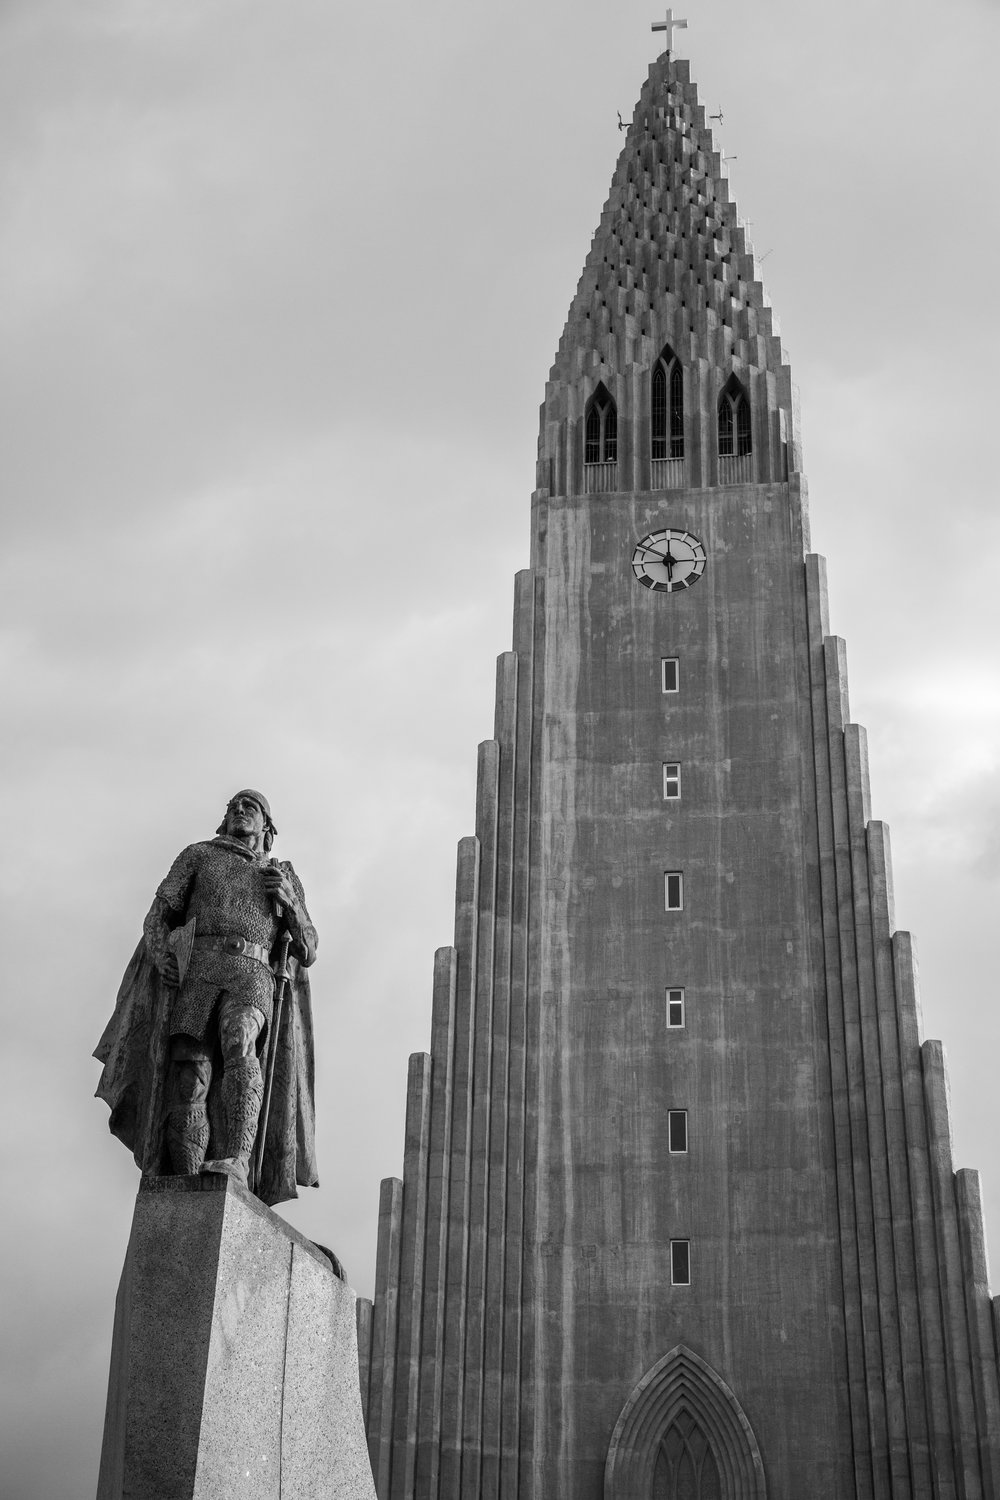 Leif Eriksson's statue outside of Hallgrimskirkja; given as a gift by the United States in 1930 to commemorate  the Icelandic Parliament's 1000 year anniversary.